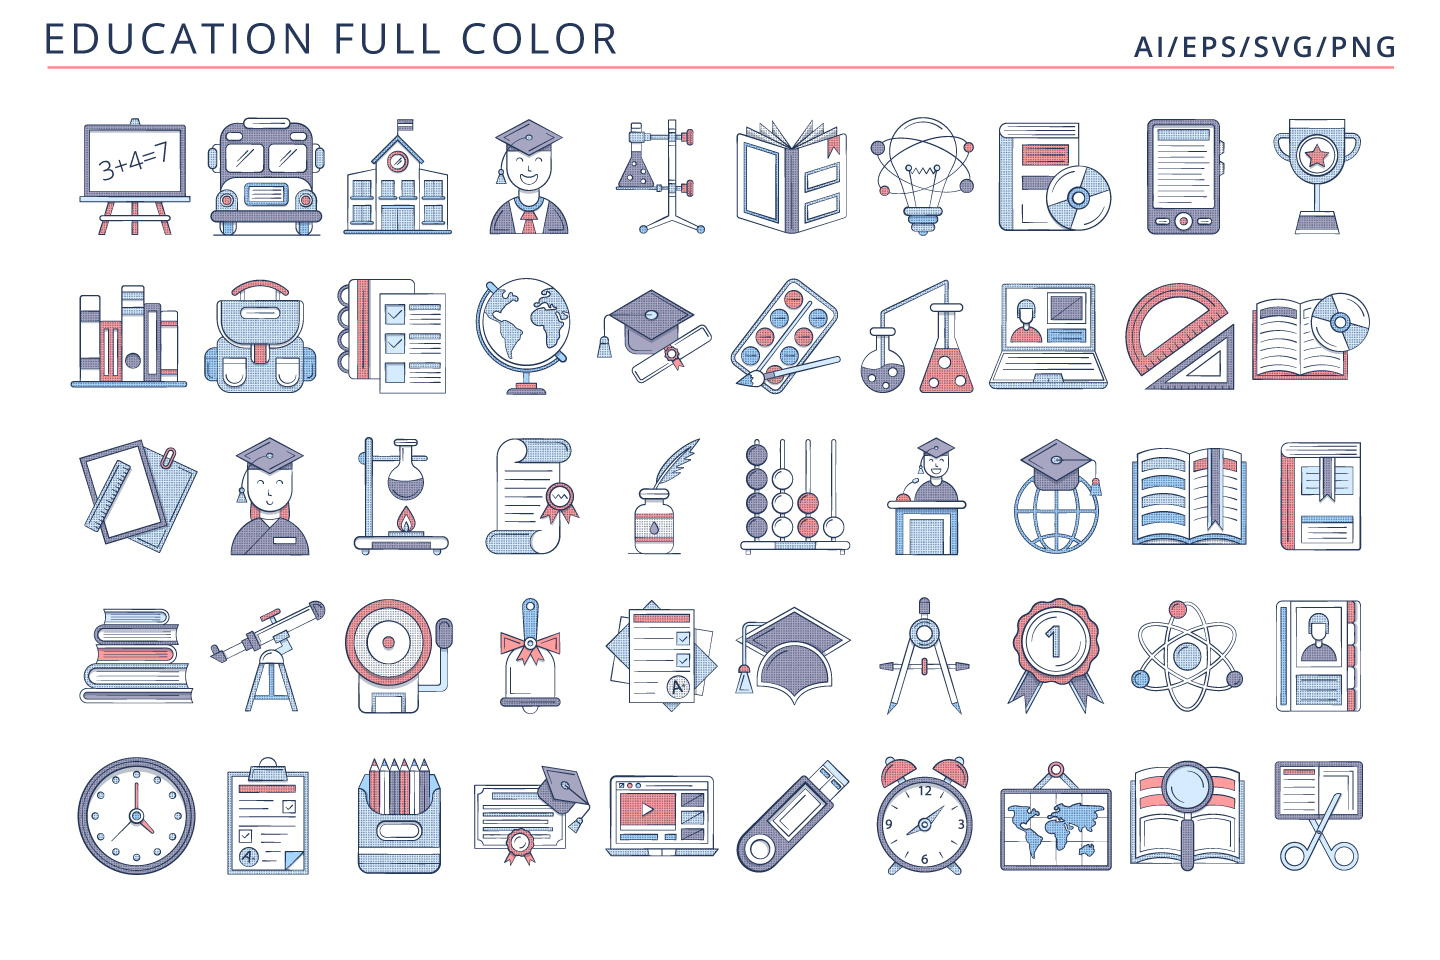 50 Education Icons (AI, EPS, SVG, PNG files)